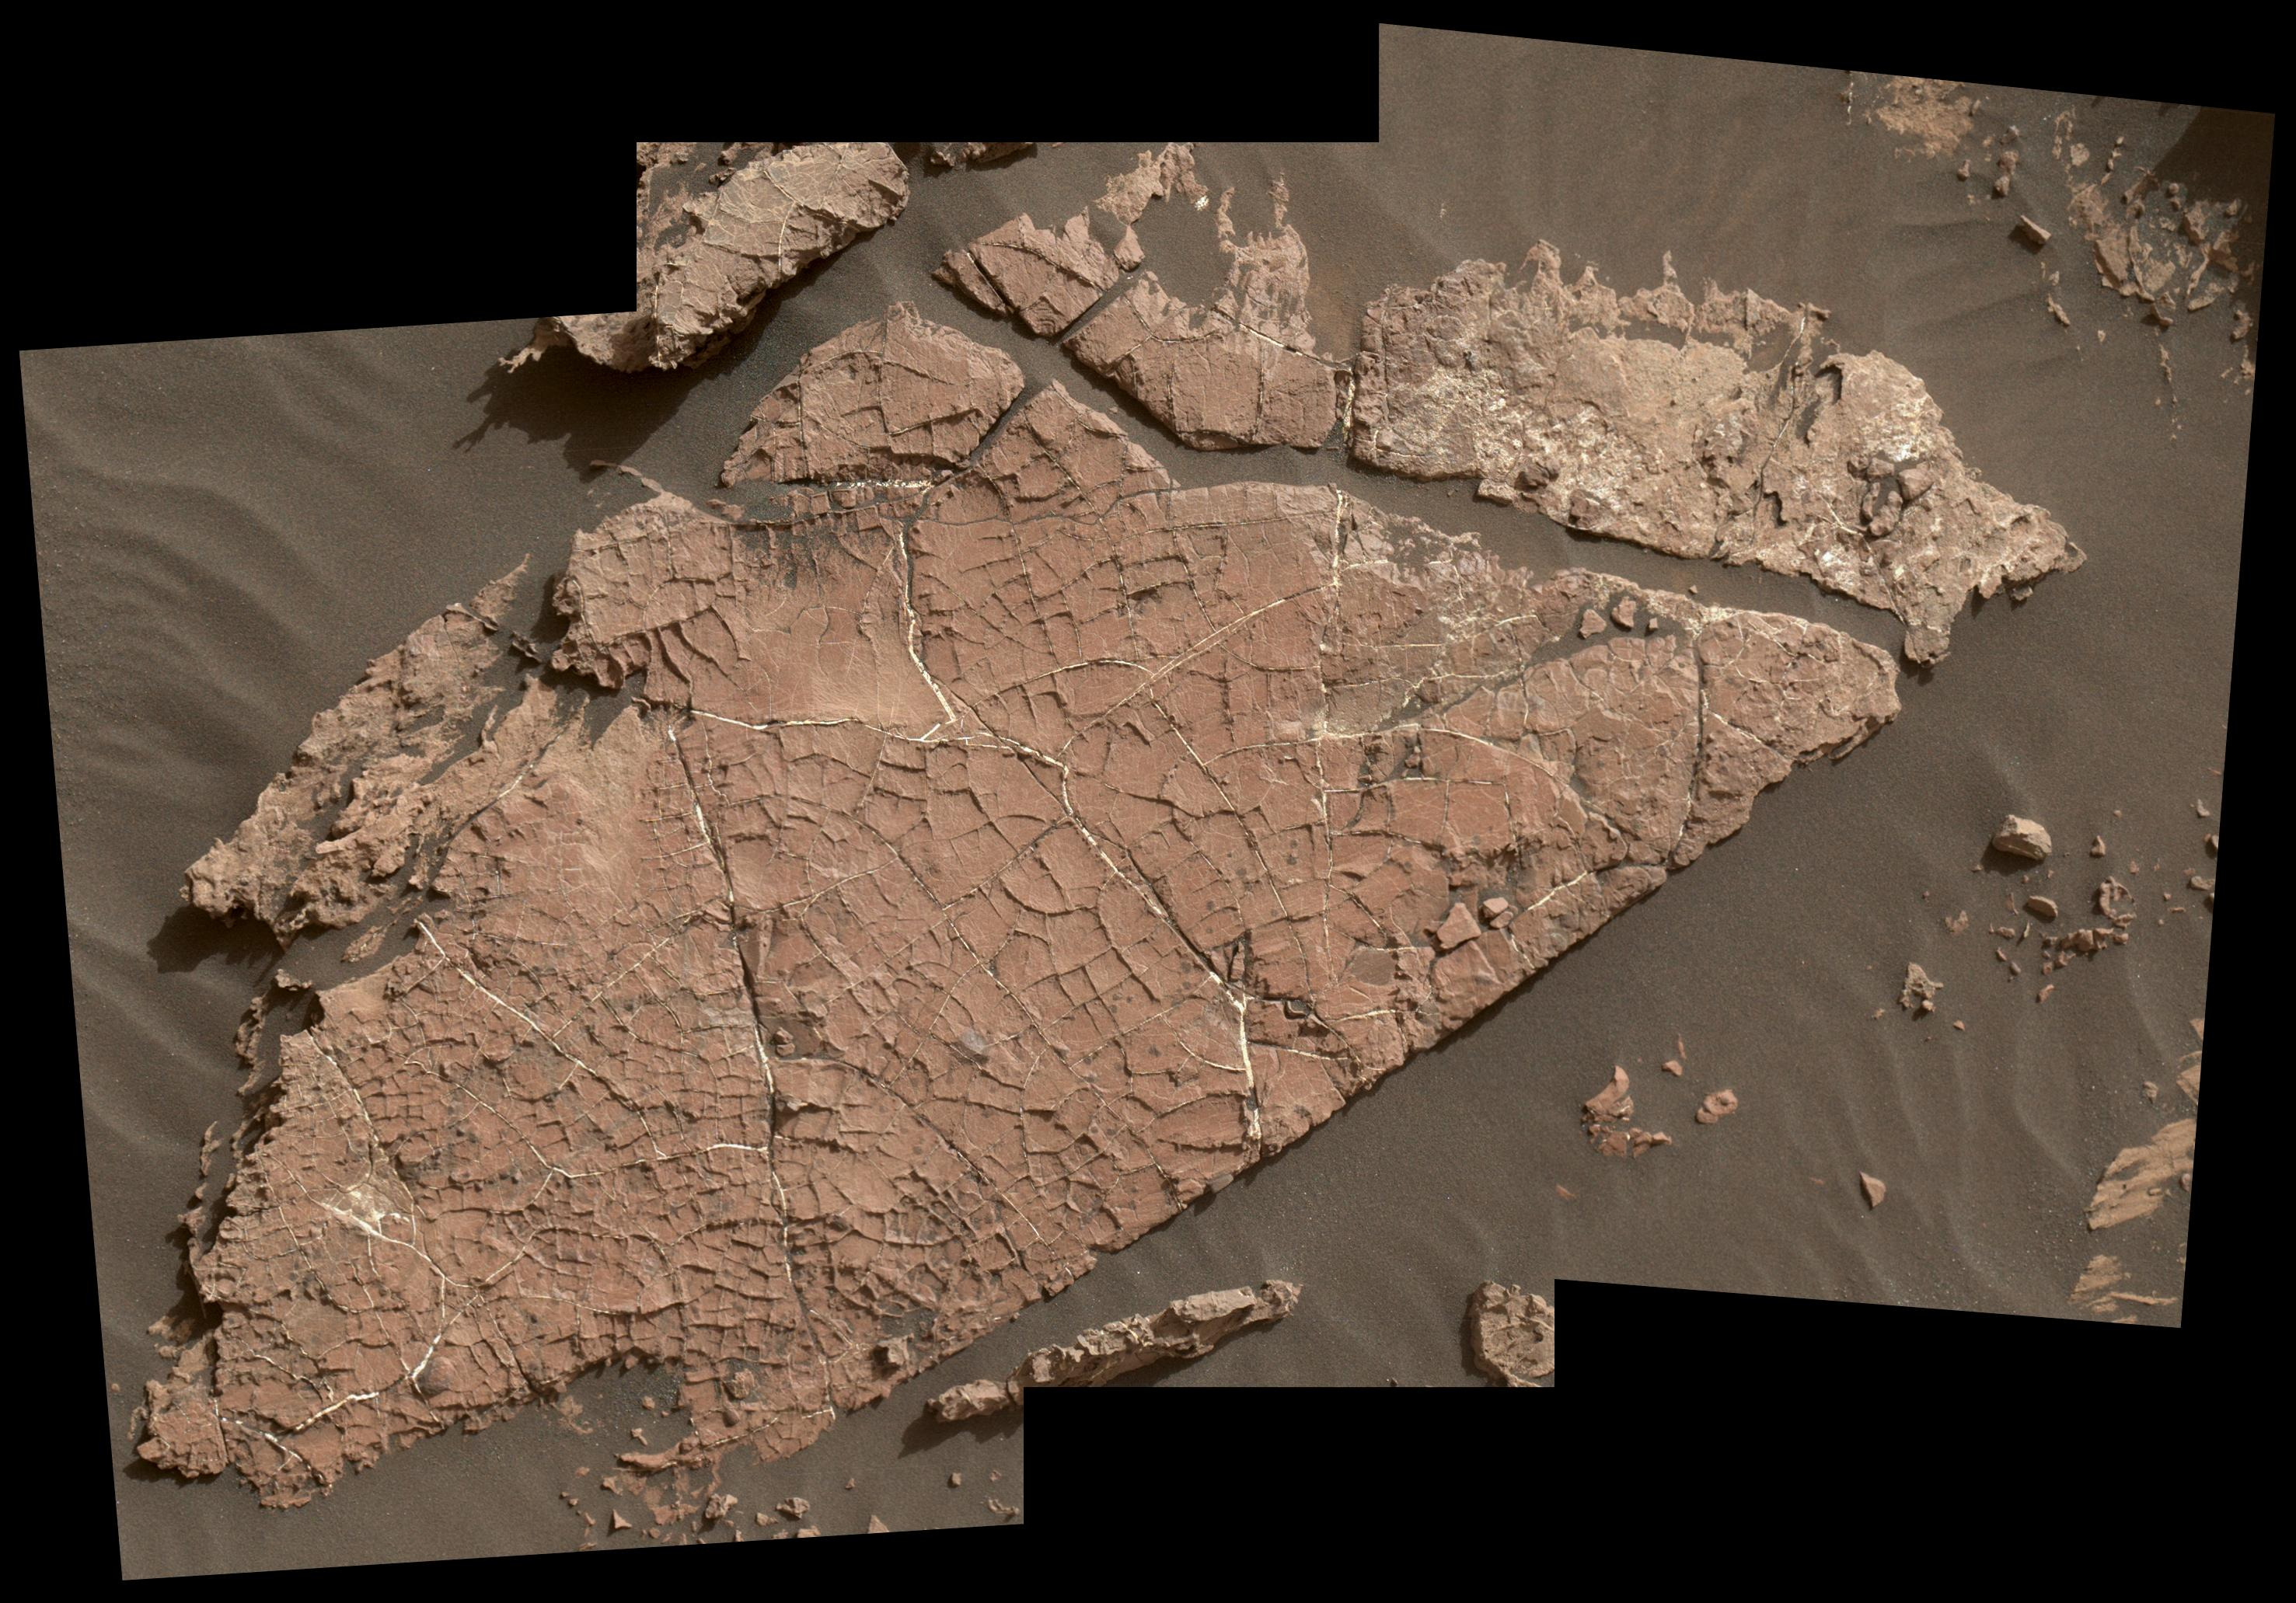 Mud Cracks on Mars Suggest a Watery Ancient Past